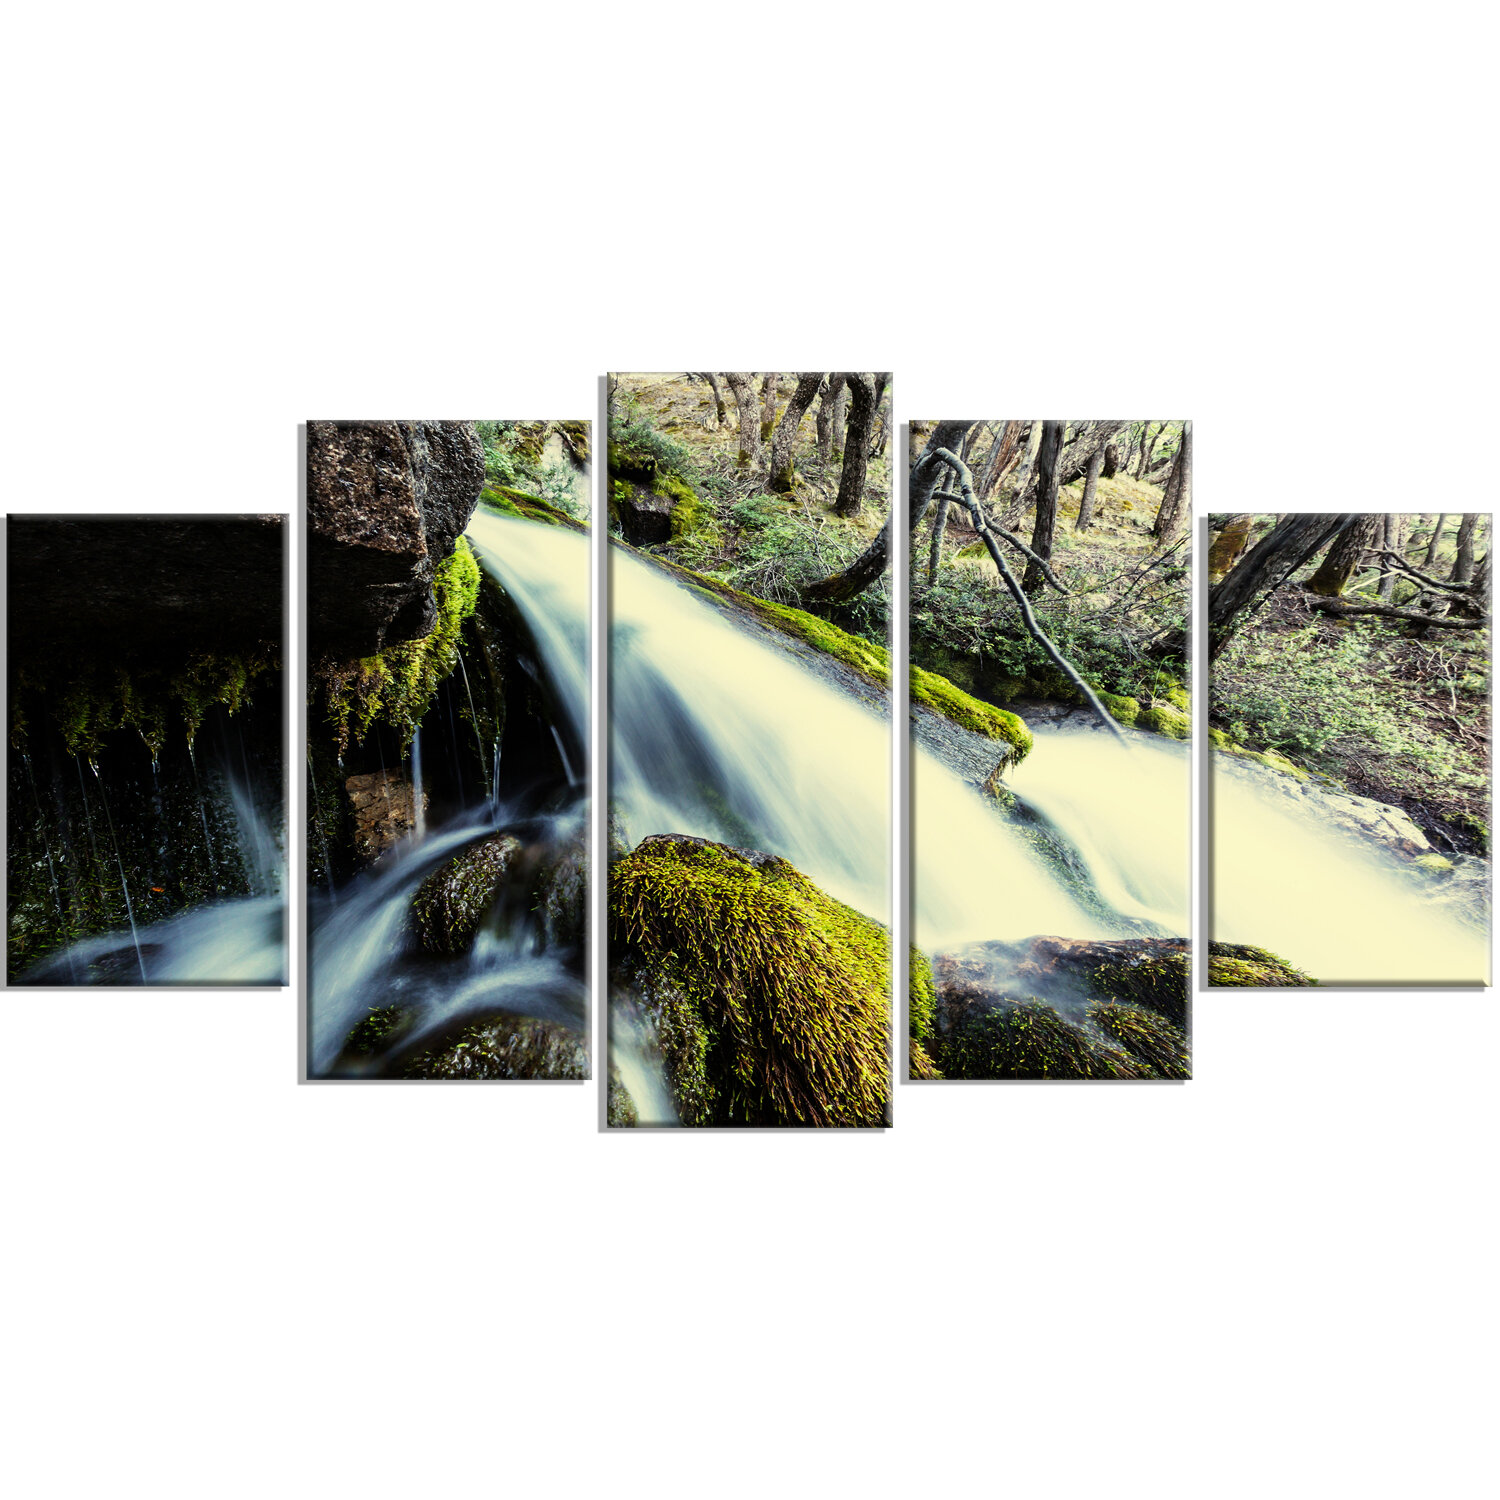 Designart Waterfall In Forest On Rocks 5 Piece Photographic Print On Wrapped Canvas Set Wayfair